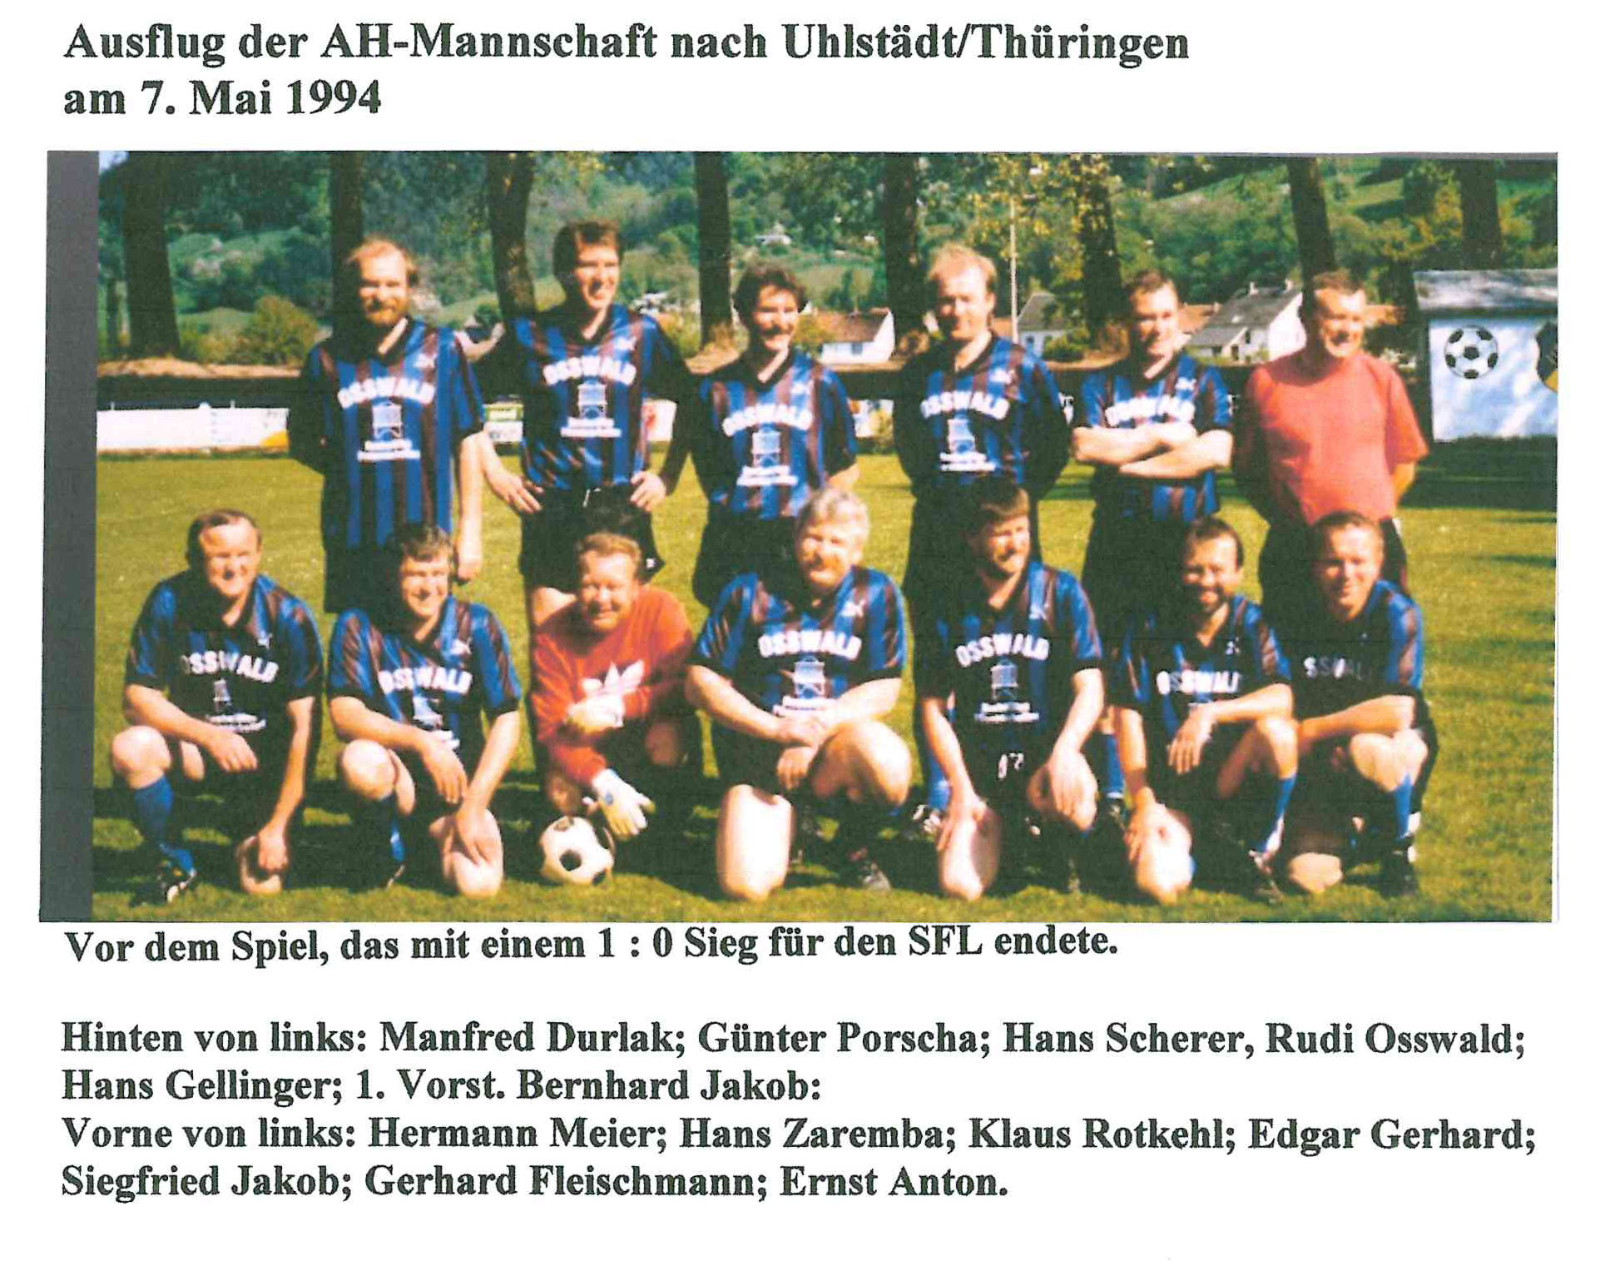 sfl-91-94-a29c-ahuhlstaedt-1994